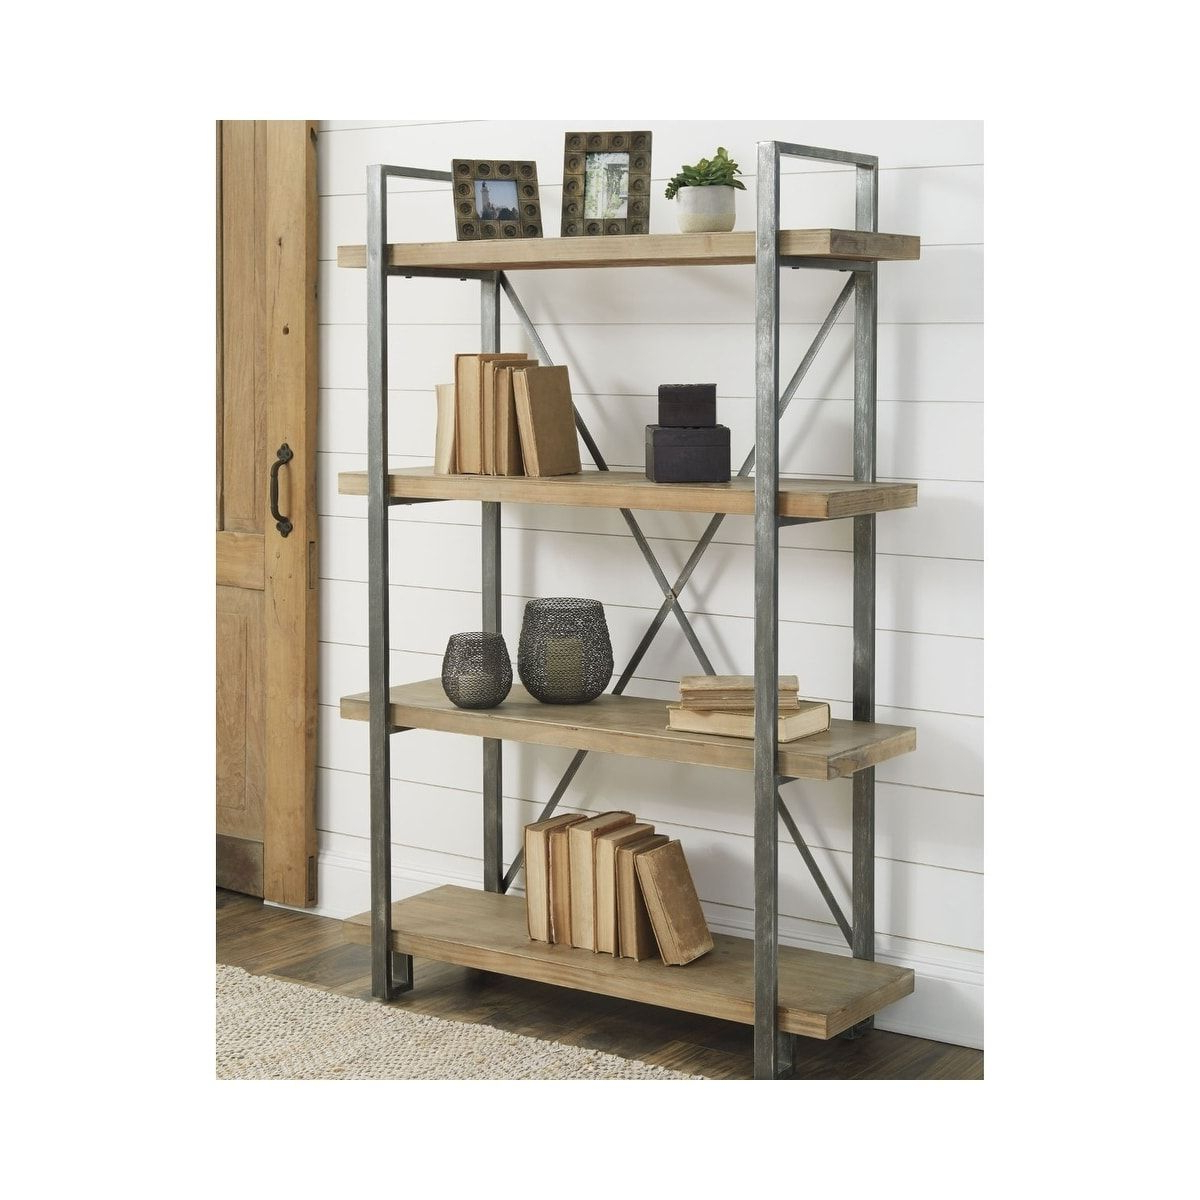 Trendy Signature Designashley Forestmin Bookshelf, Brown In Inside Whidden Etagere Bookcases (View 9 of 20)